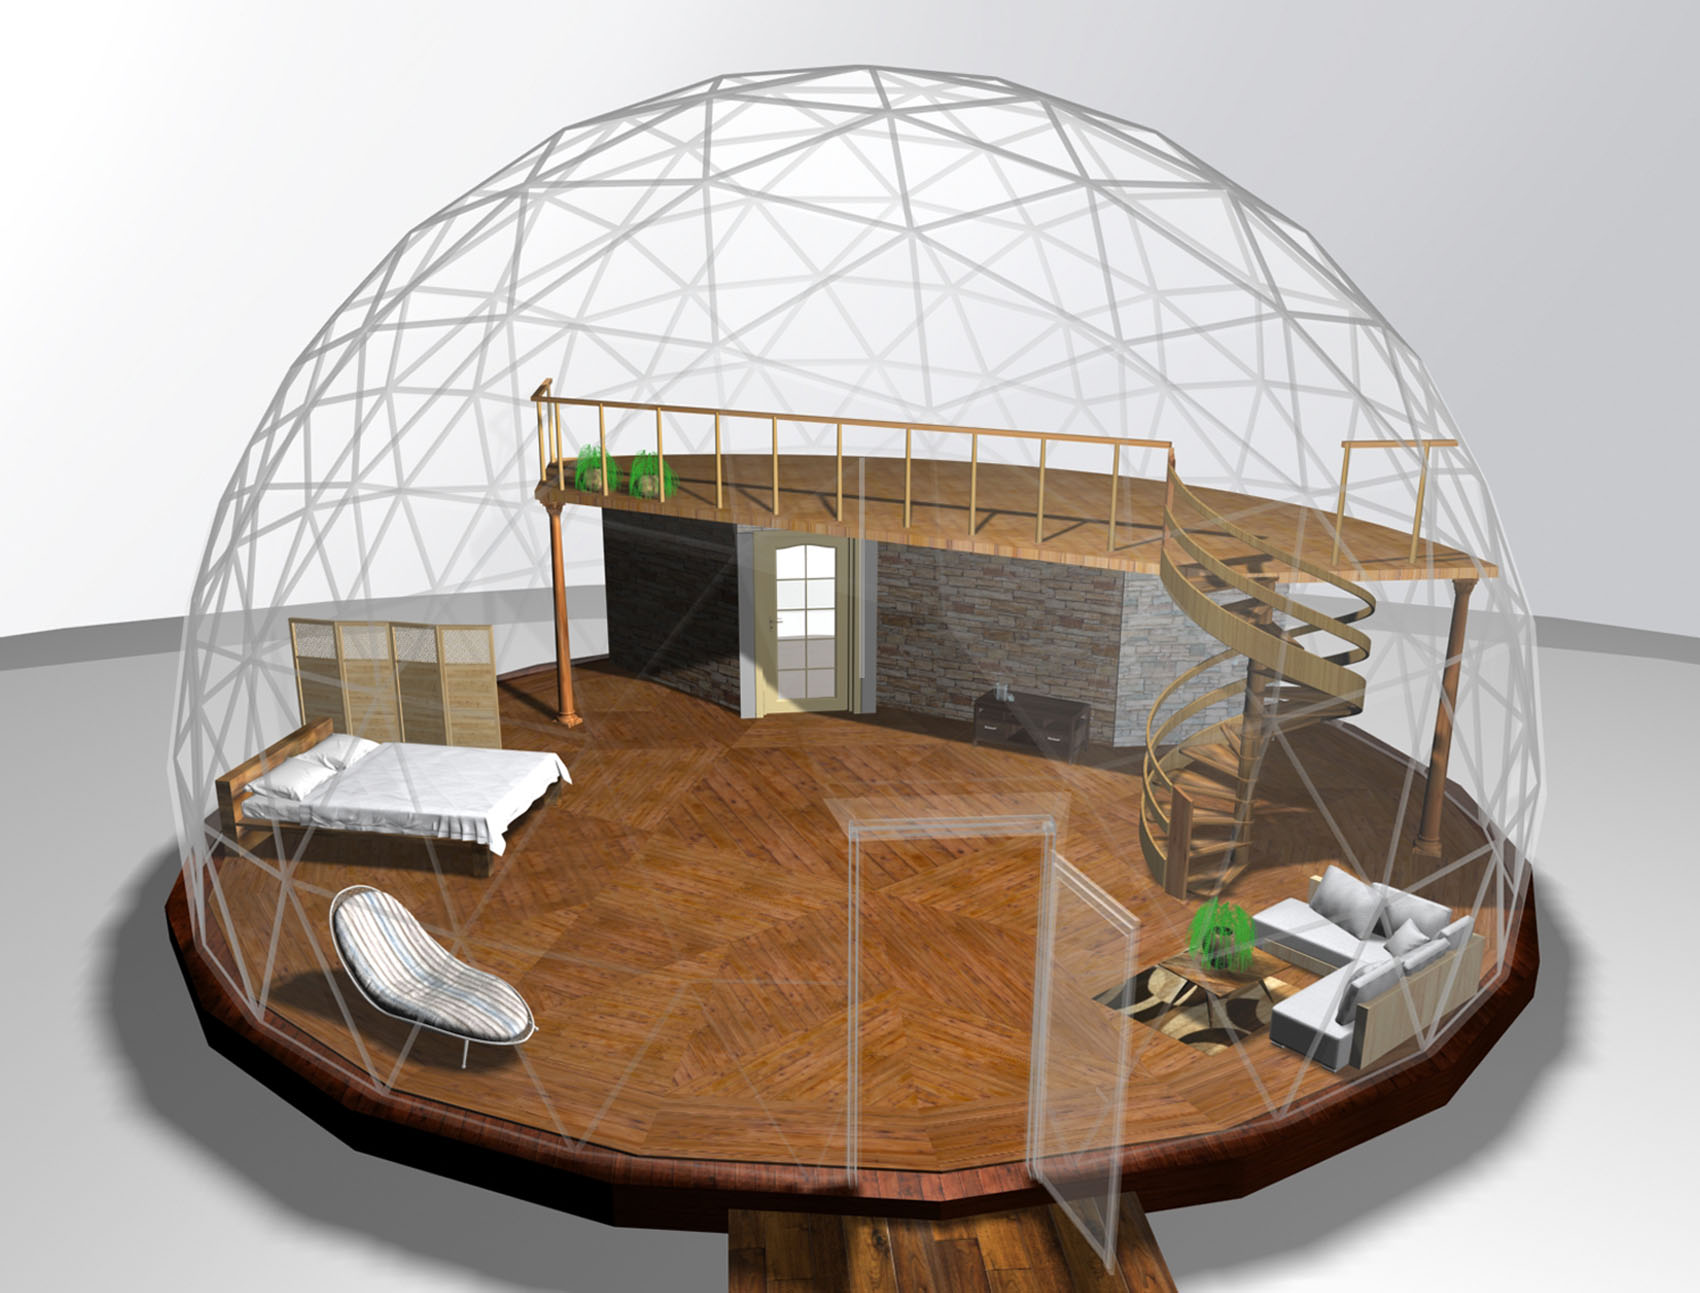 36' dome with king size bed